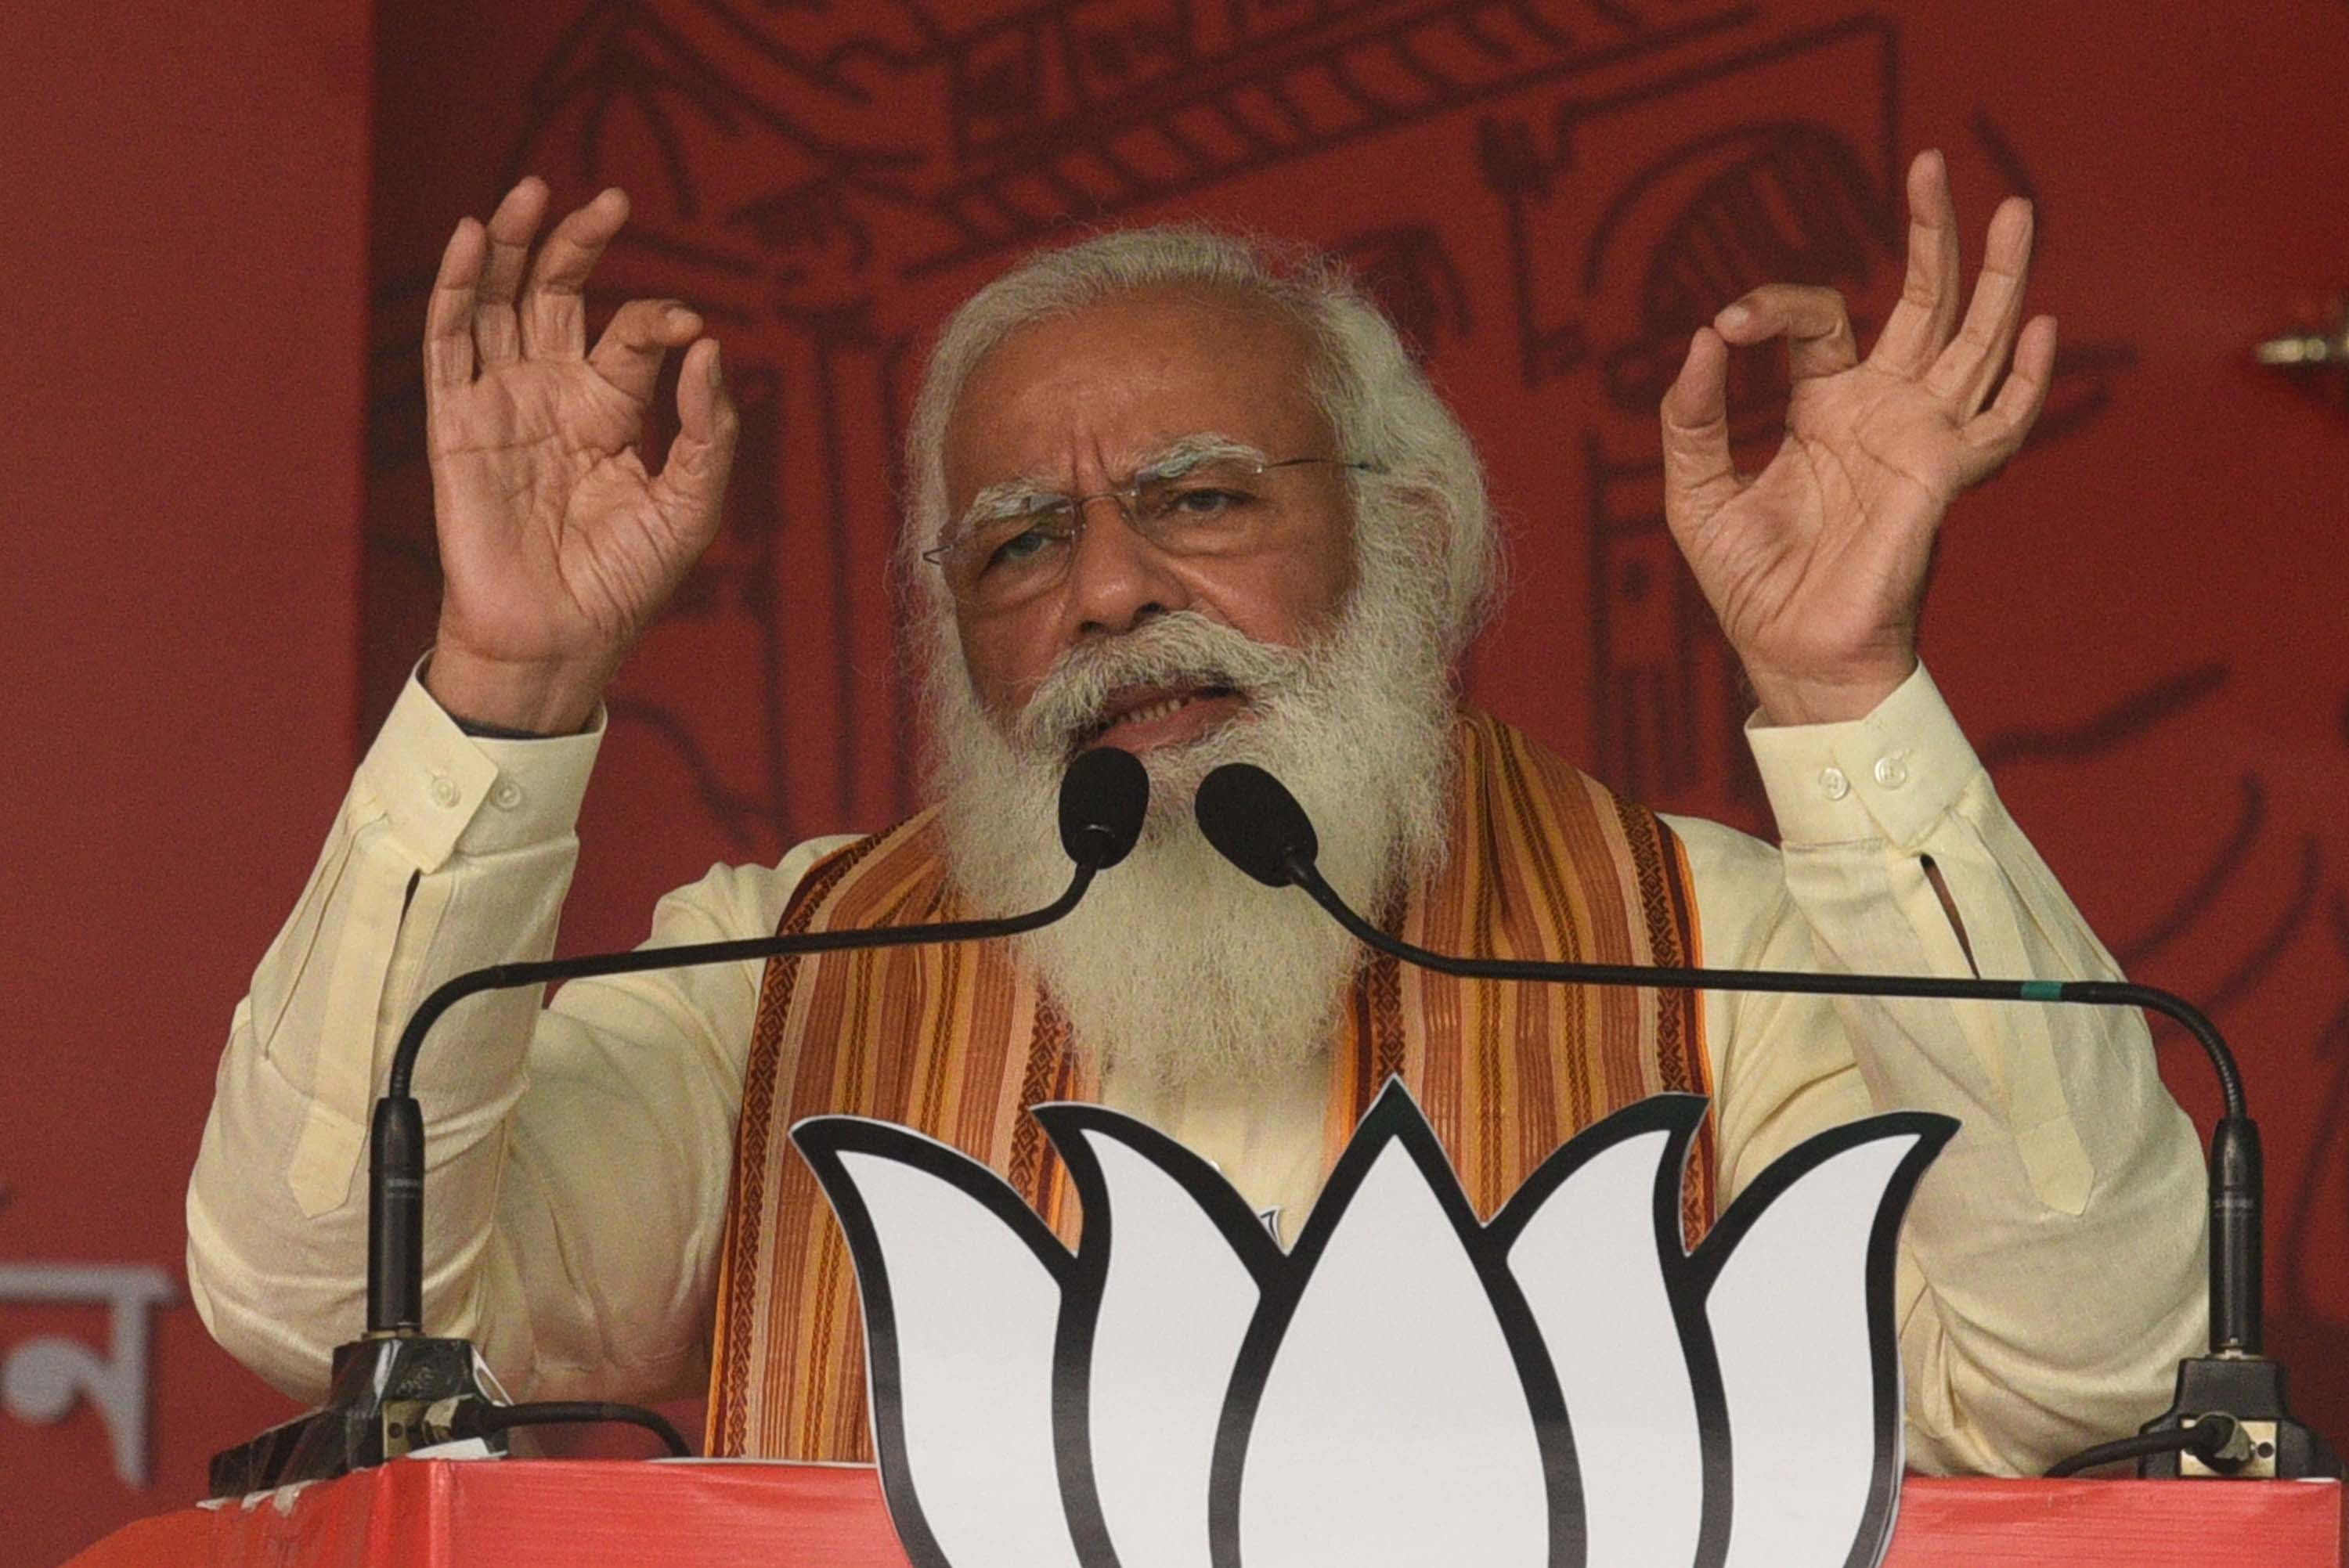 India's Prime Minister Narendra Modi addresses a public rally in North 24 Parganas, India, on April 12.